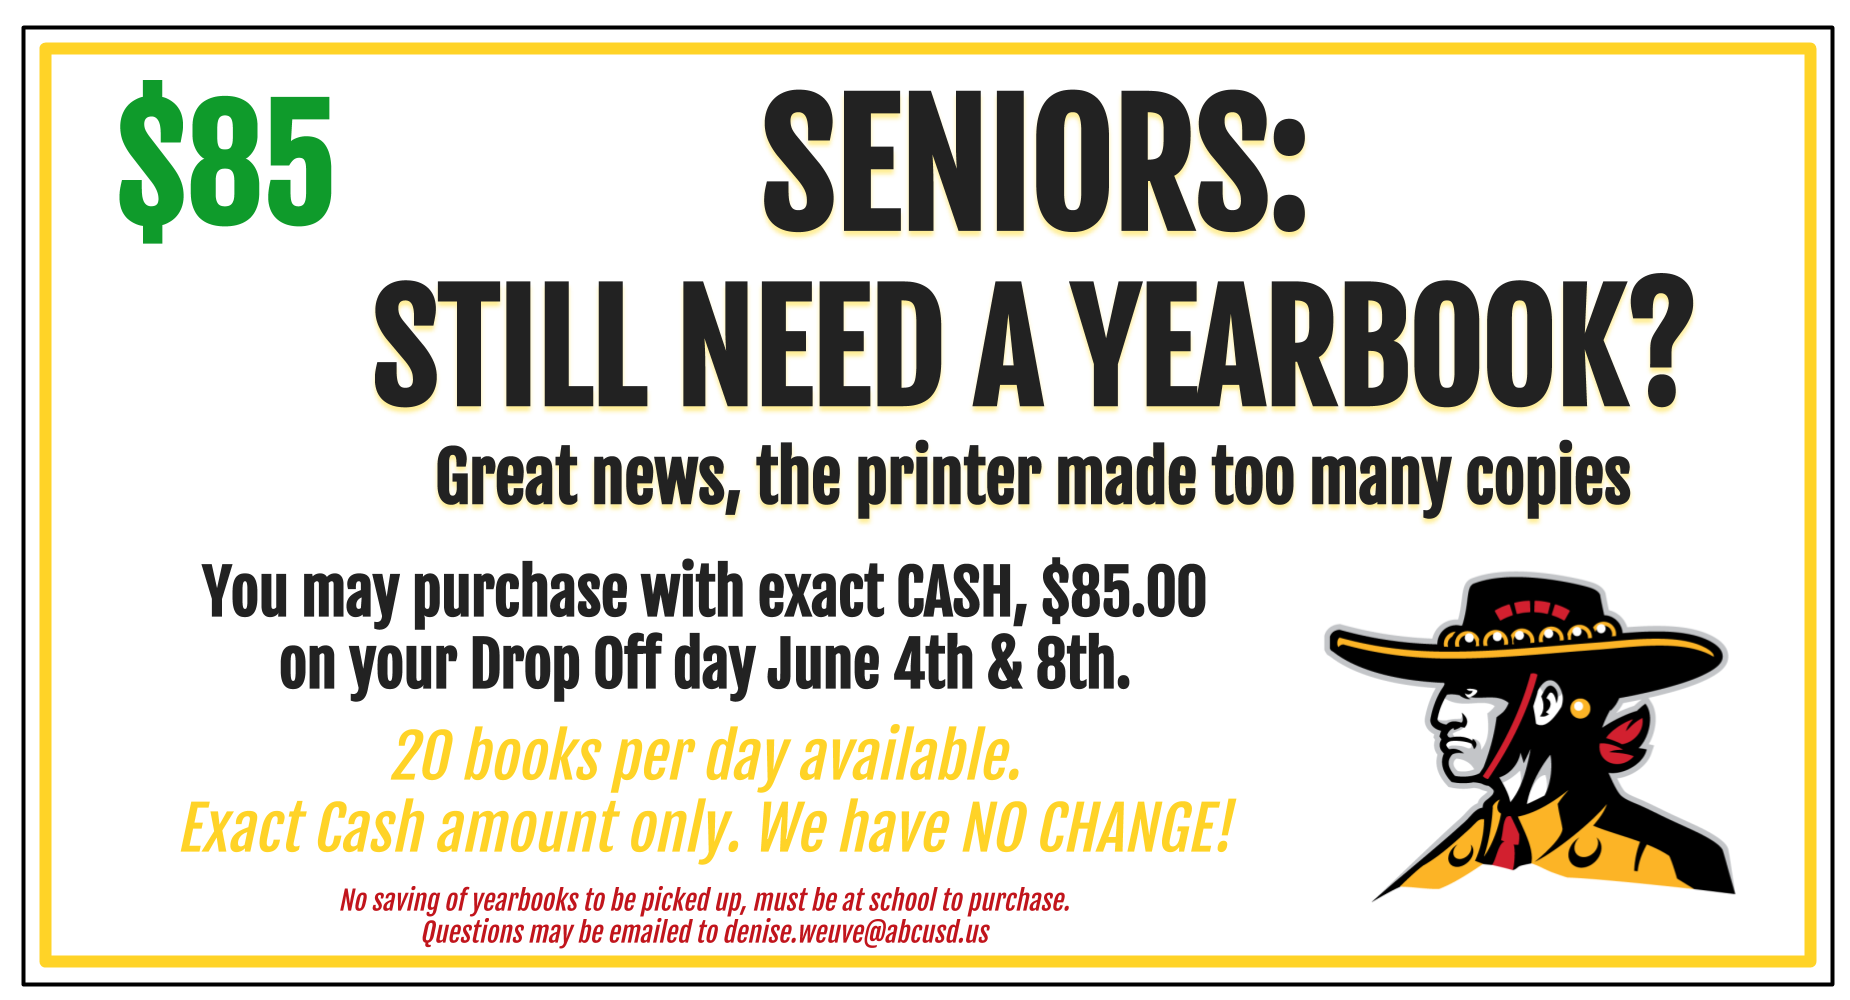 Seniors - 40 yearbooks available